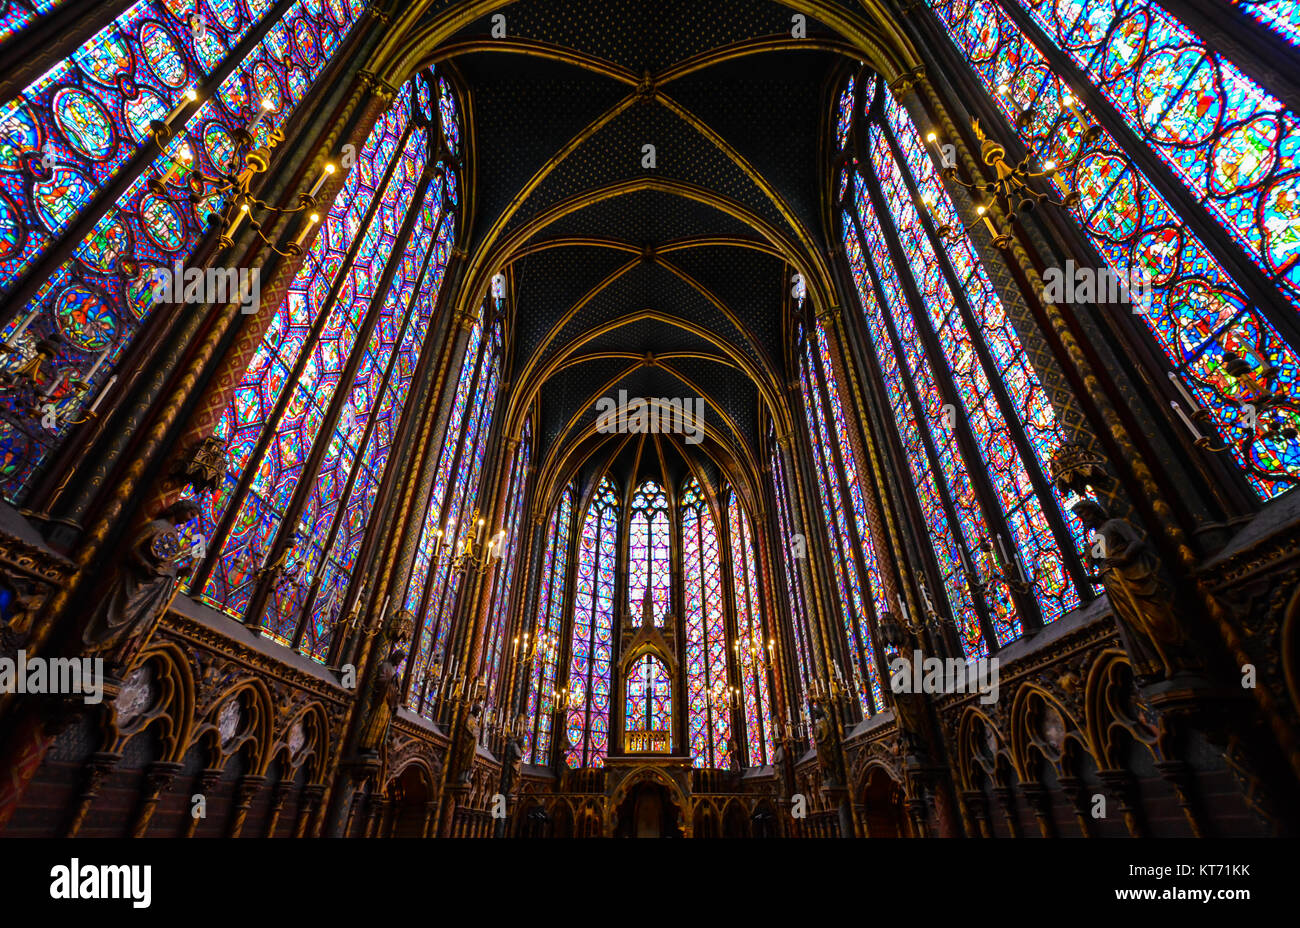 The Interior Upper Level Of Sainte Chapelle Gothic Royal Chapel On Ile De La Cite In Paris France Highlighting Its Stained Glass Windows